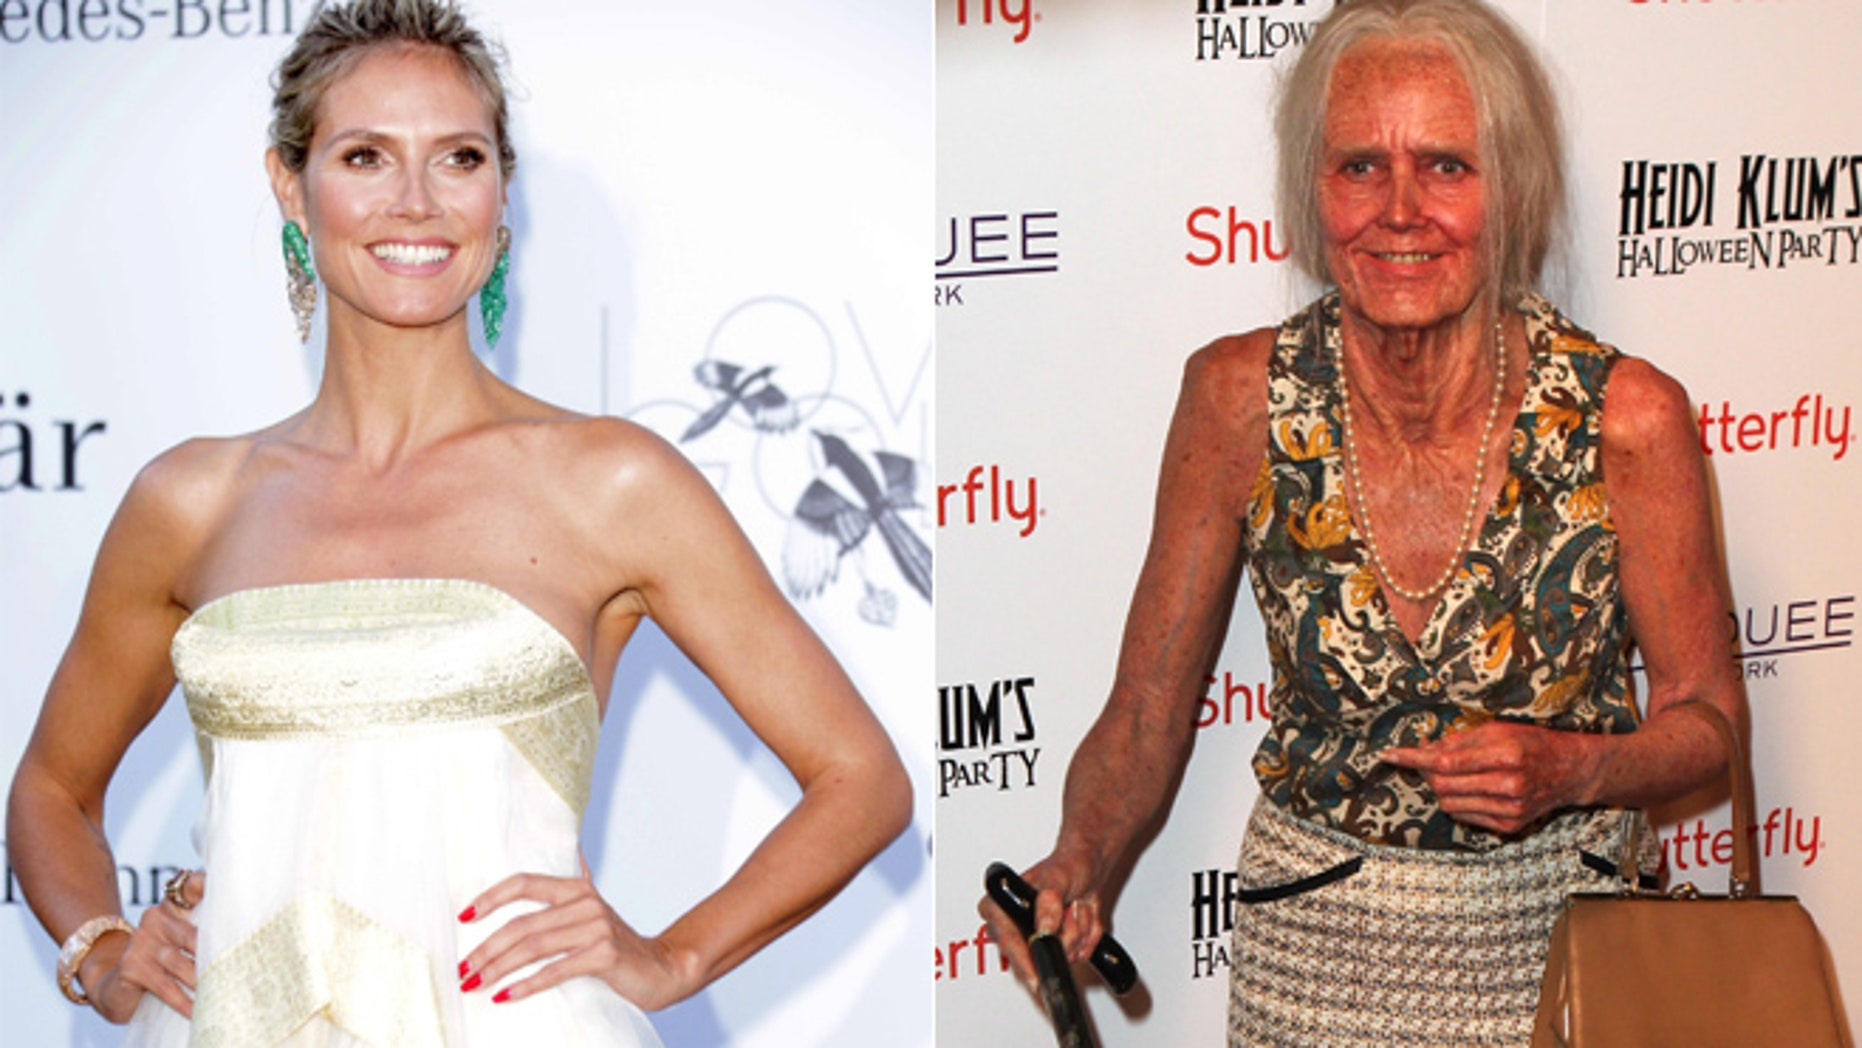 Heidi Klum dressed as an old lady for her annual Halloween party on Oct. 31, 2013.